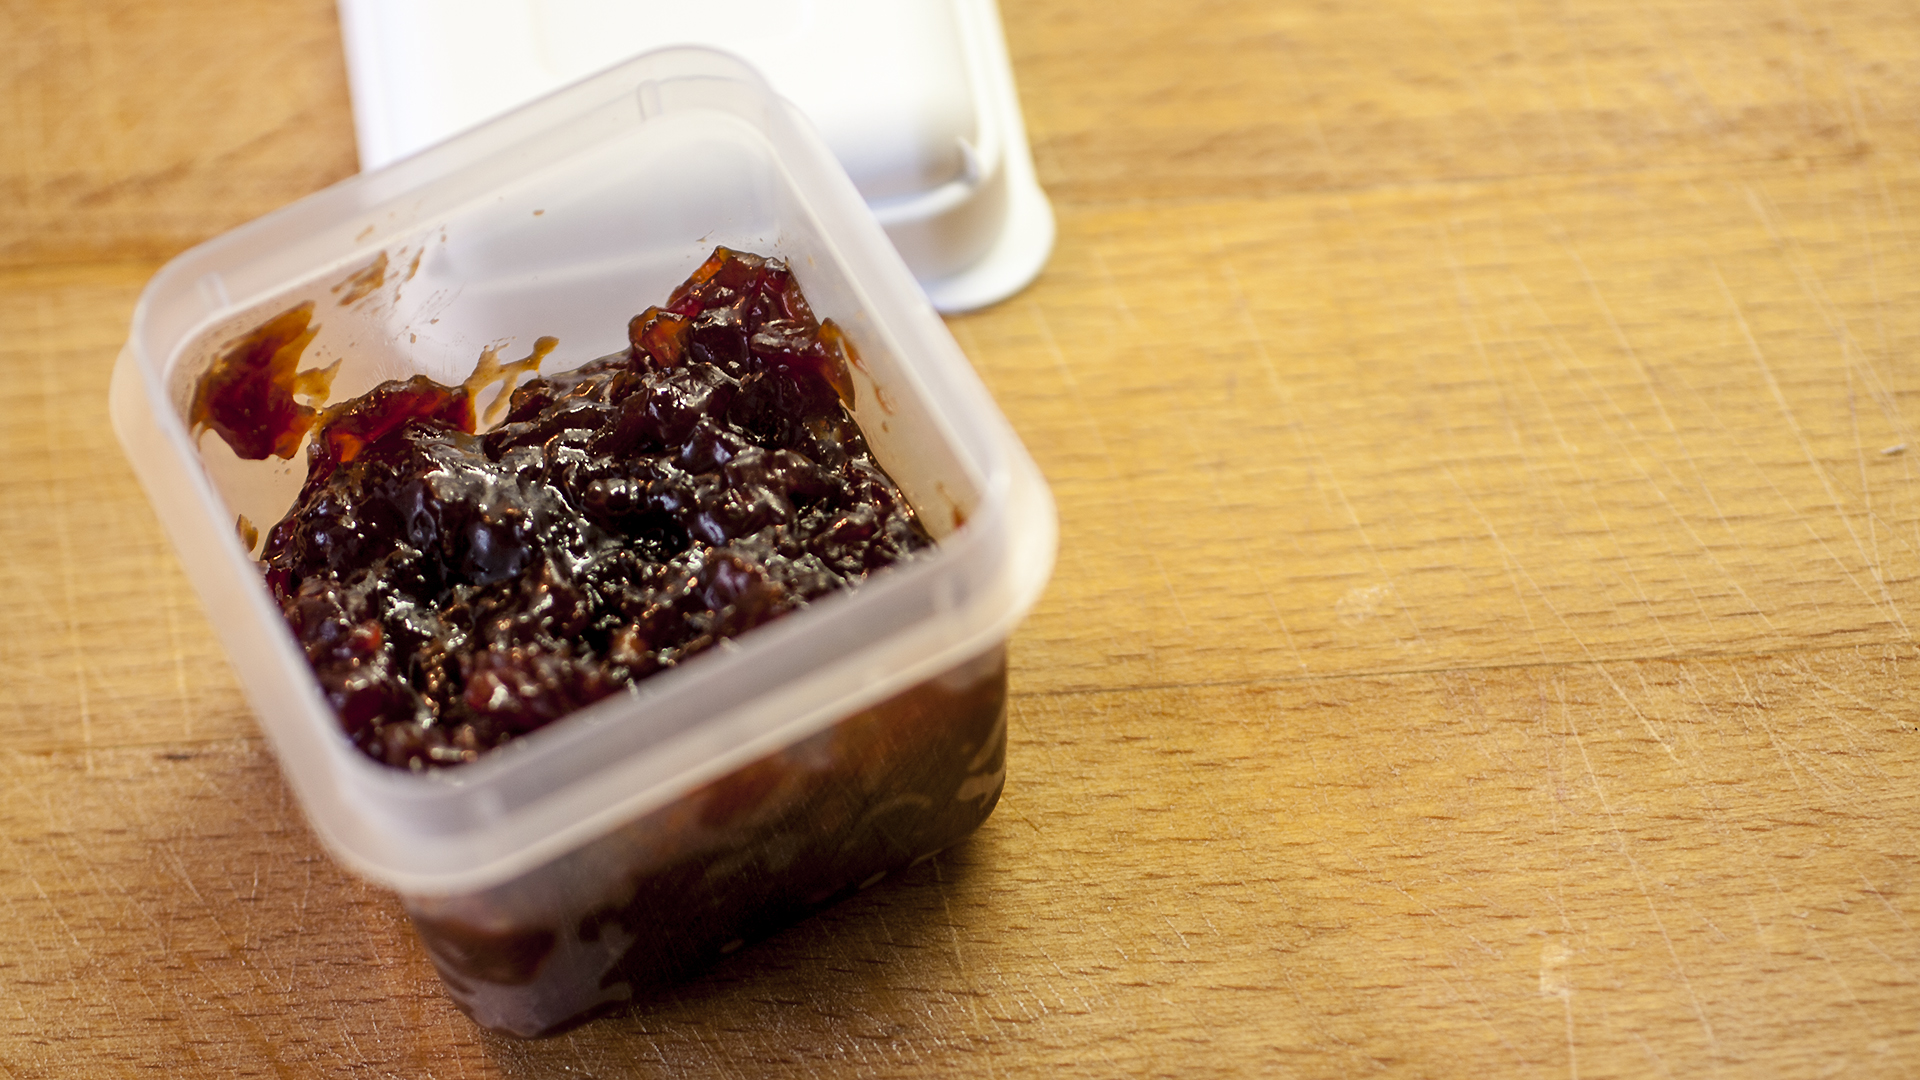 Use a small container to take the relish with you